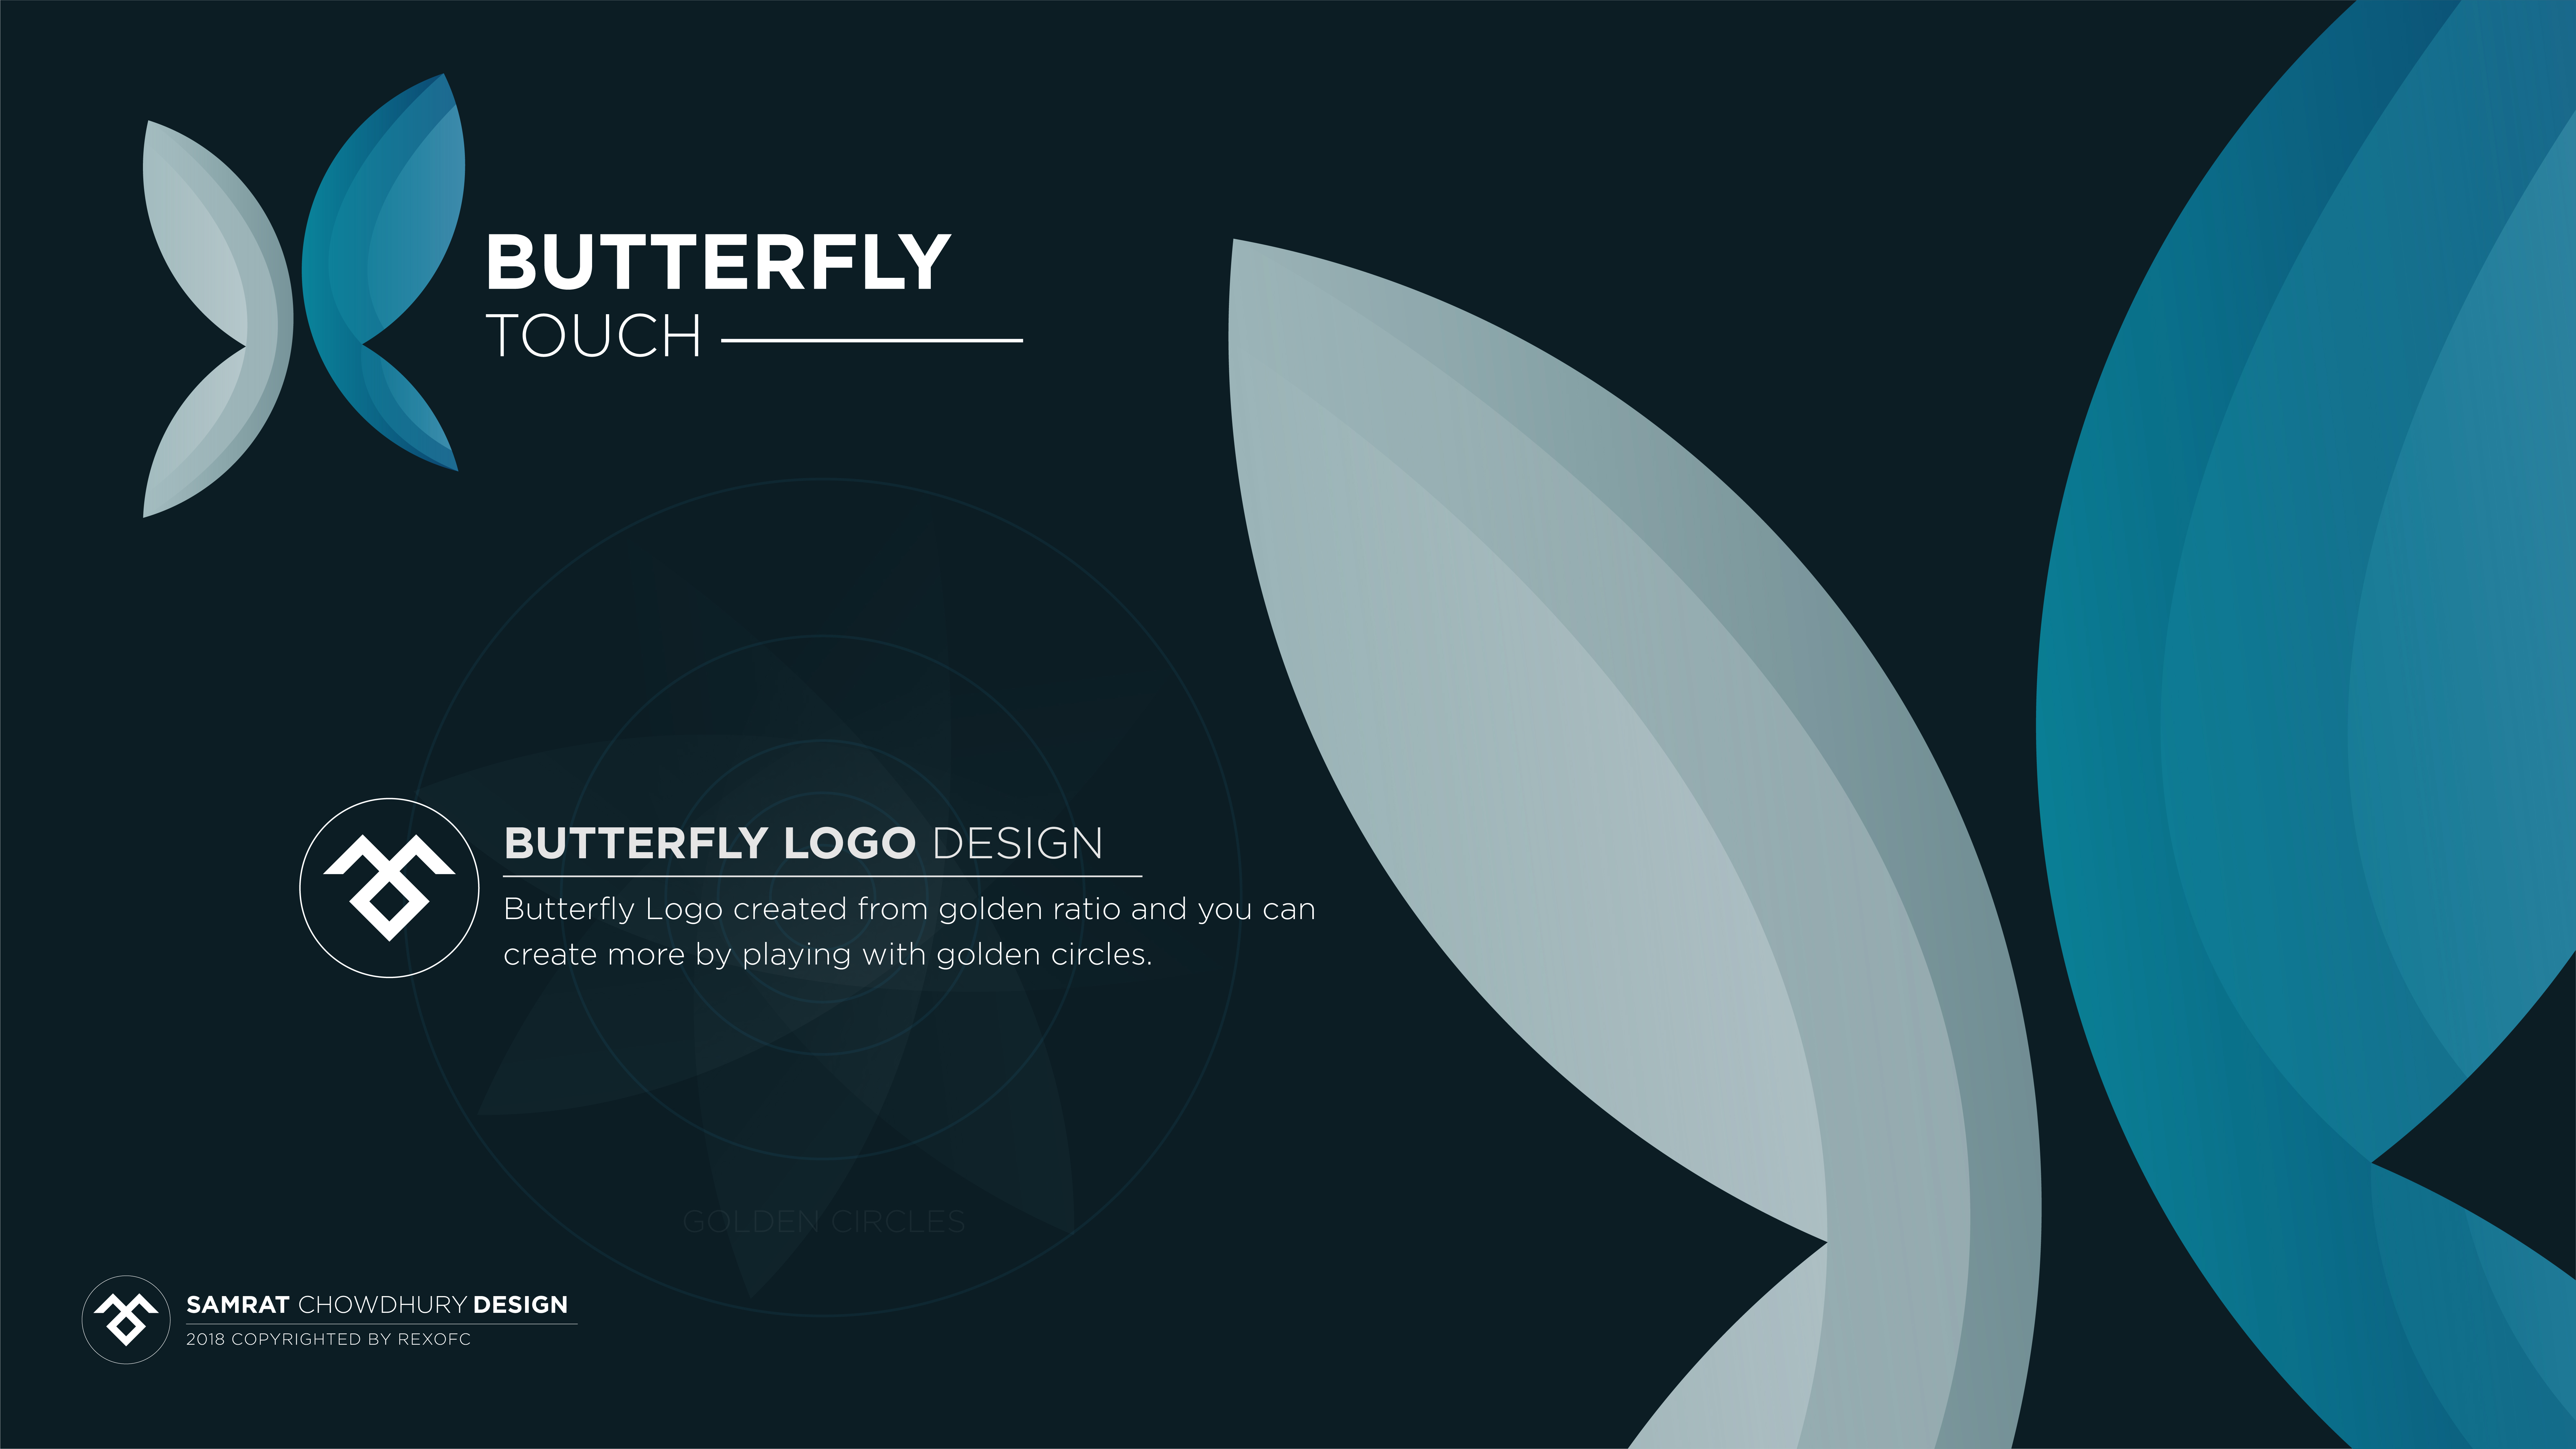 ButterFly Logo example image 2